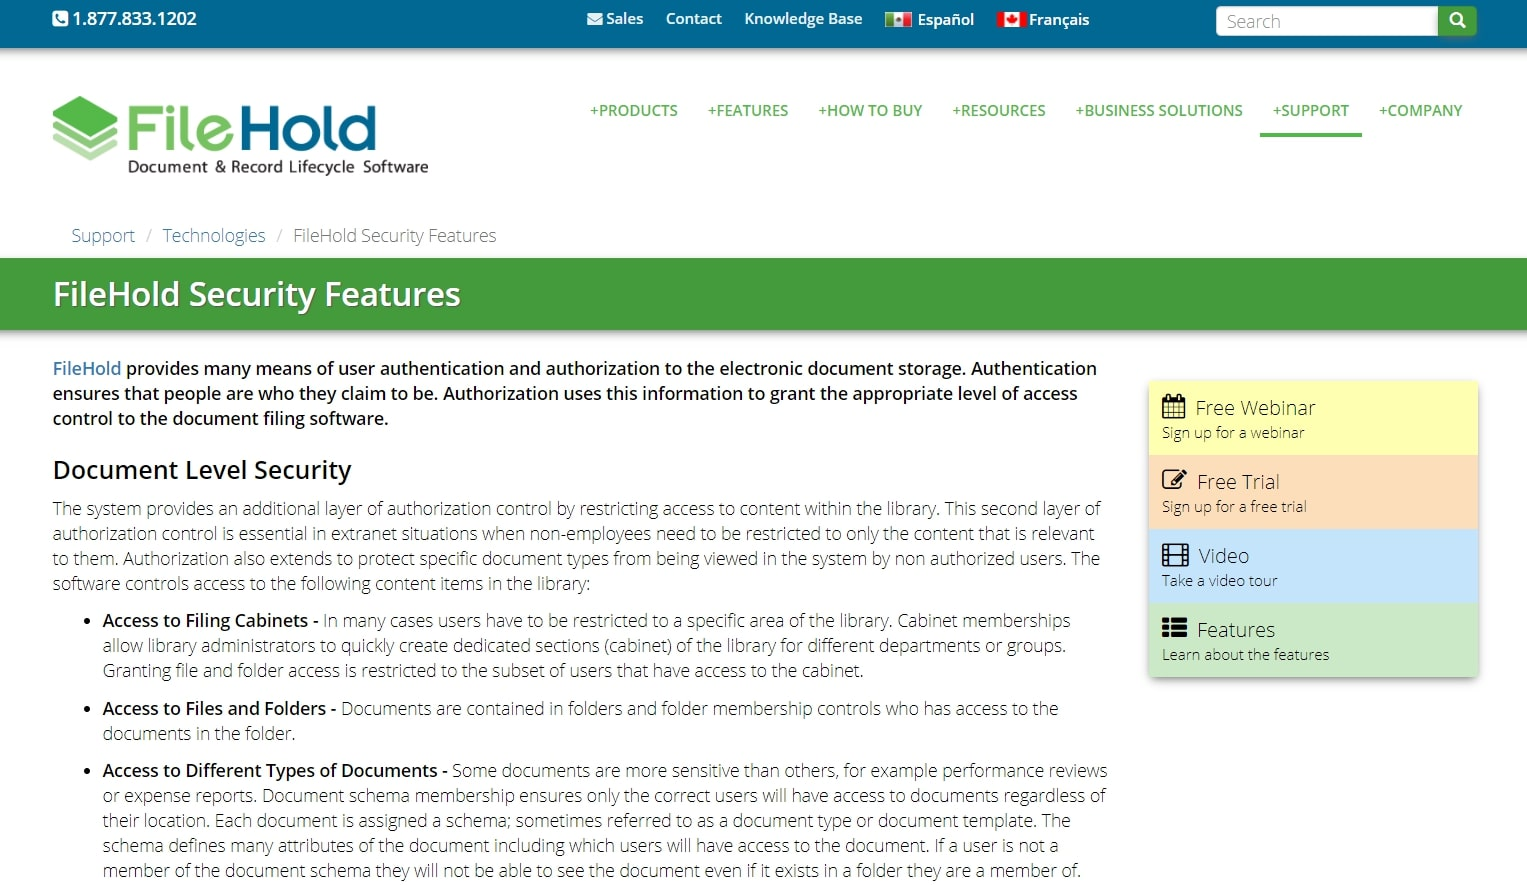 Filehold Systems features page